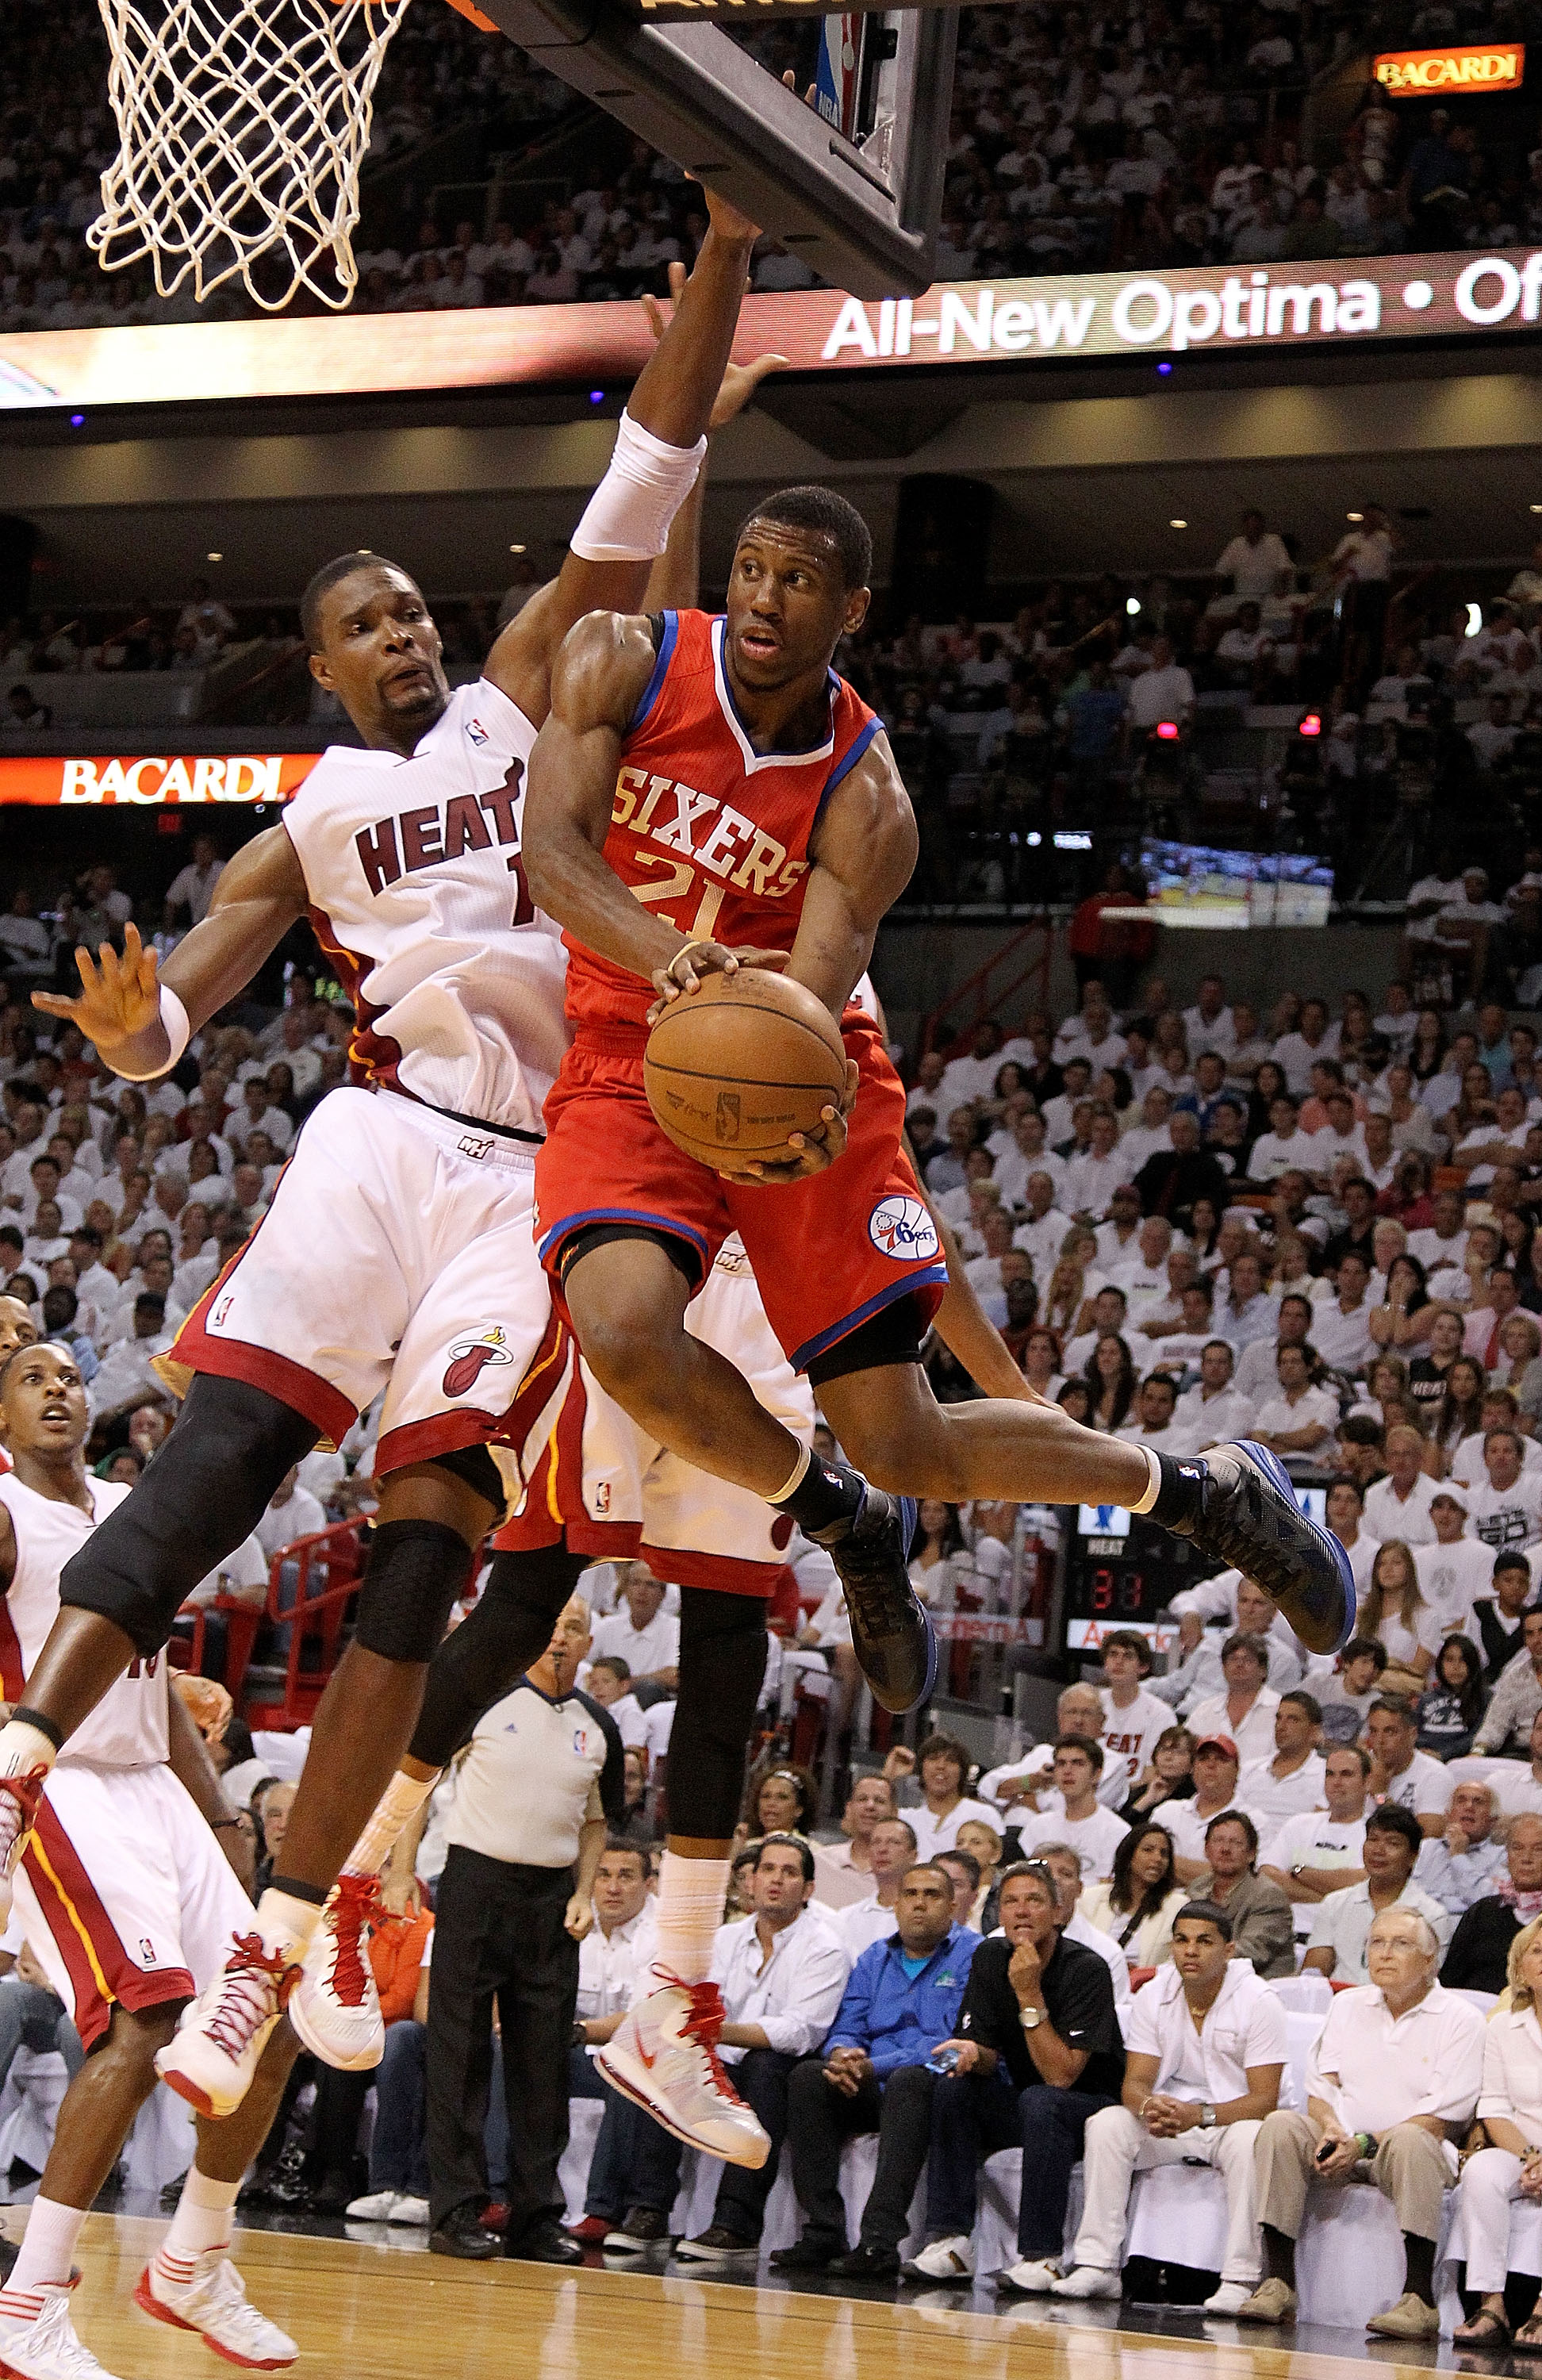 MIAMI, FL - APRIL 27:  Thaddeus Young #21 of the Philadelphia 76ers drives past Chris Bosh #1 of the Miami Heat during game five of the Eastern Conference Quarterfinals in the 2011 NBA Playoffs at American Airlines Arena on April 27, 2011 in Miami, Florid